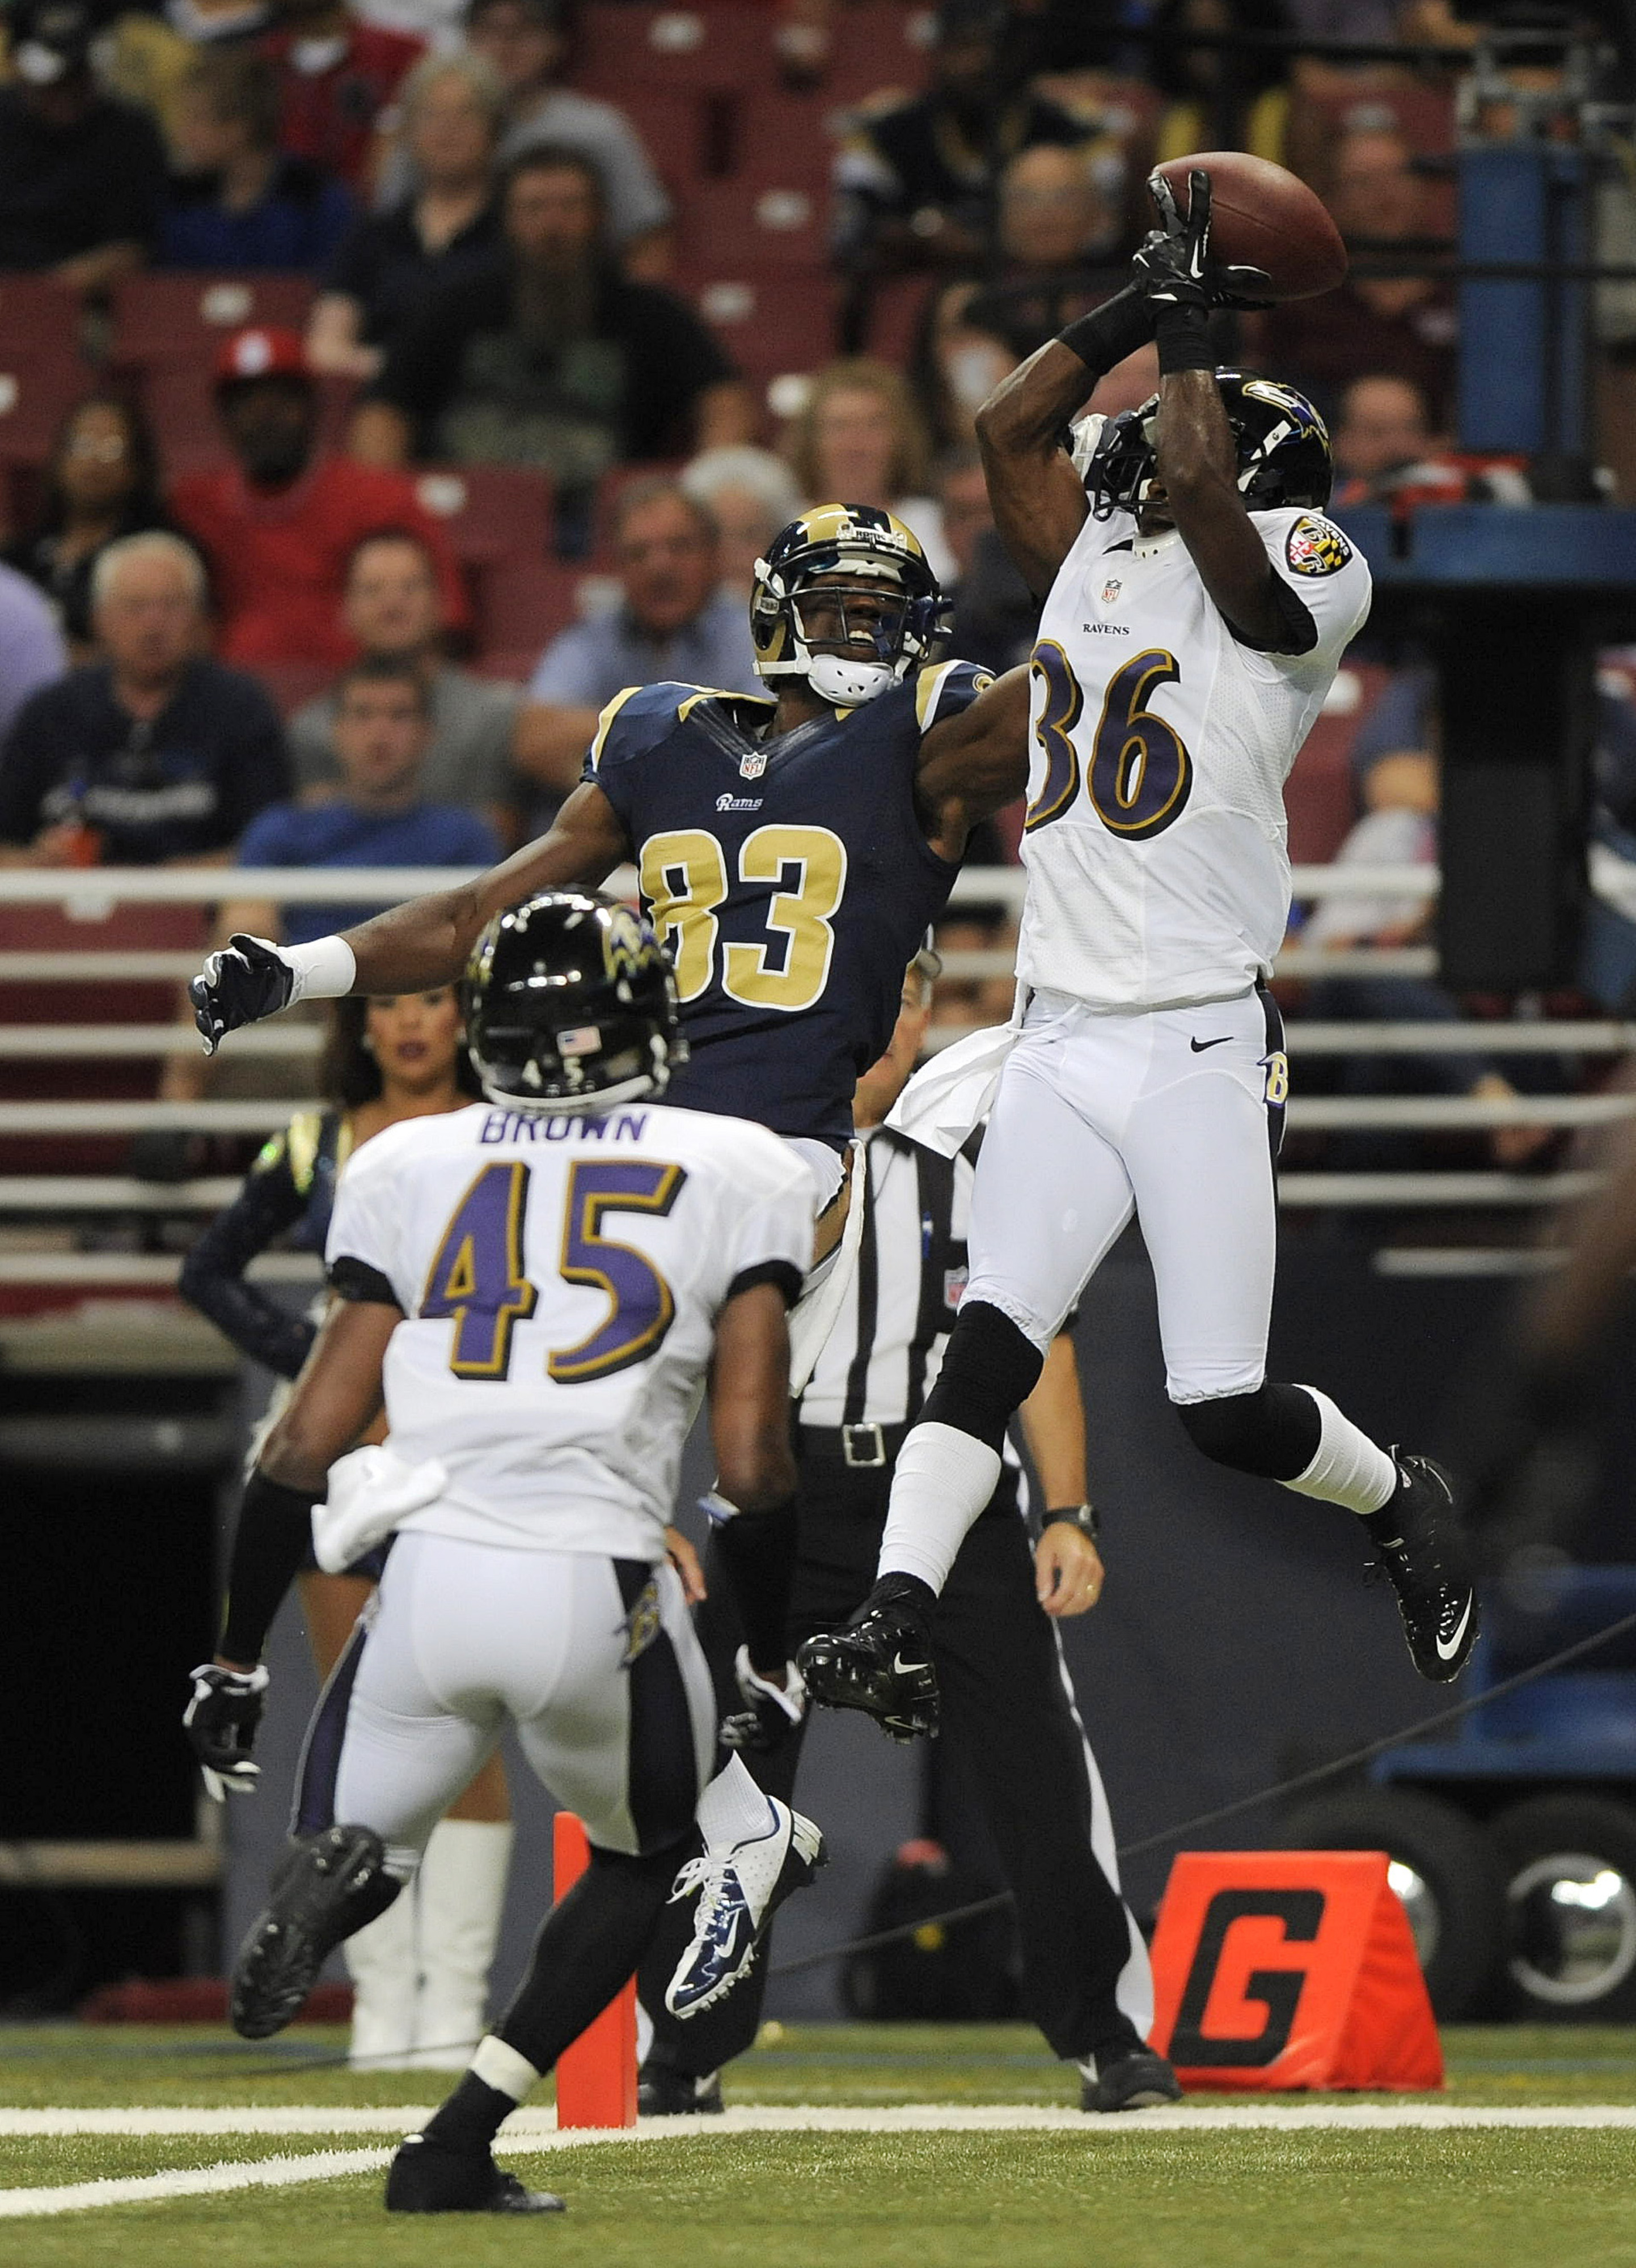 August 30, 2012; St. Louis, MO, USA; Baltimore Ravens cornerback Danny Gorrer (36) intercepts a pass intended for St. Louis Rams wide receiver Brian Quick (83) during the first half at the Edward Jones Dome. Mandatory Credit: Jeff Curry-US PRESSWIRE